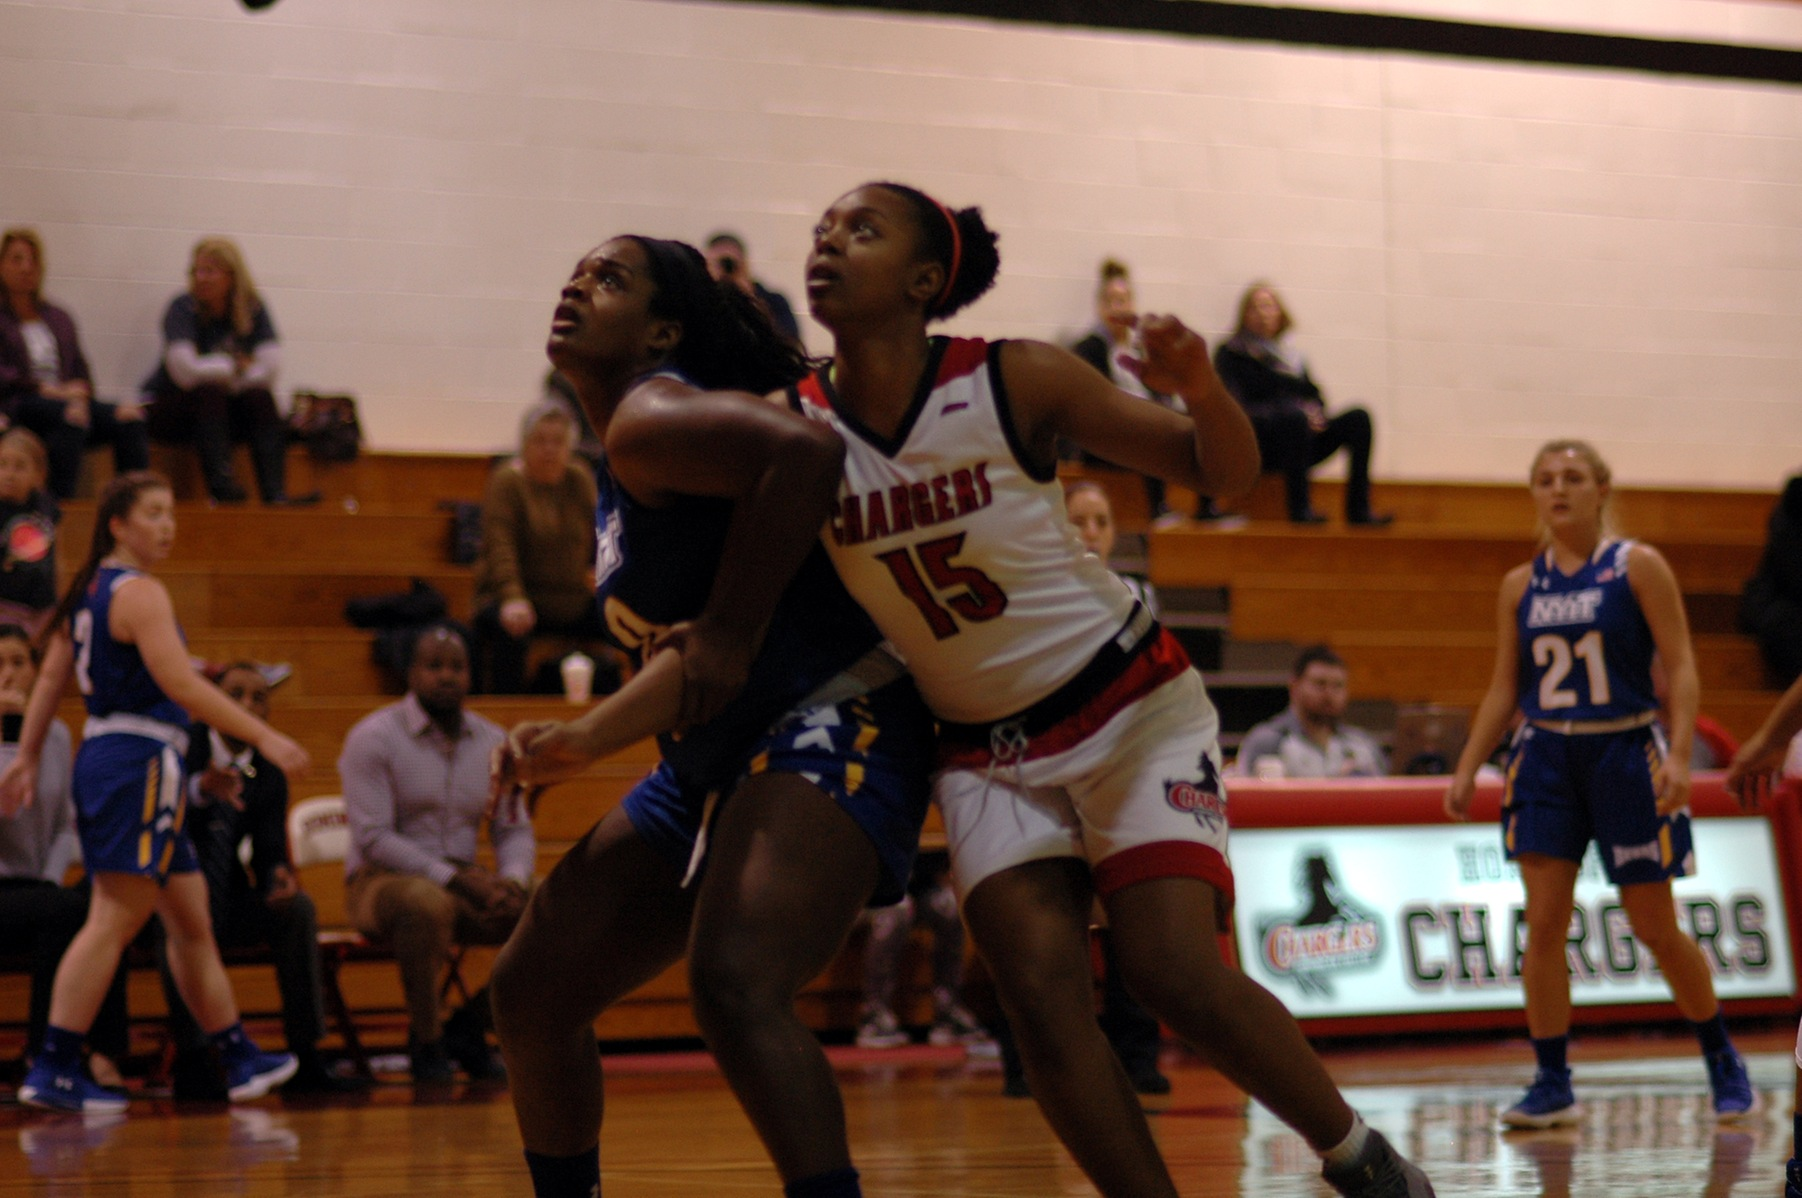 LADY CHARGERS REMAIN WINLESS AFTER LOSS TO QUEENS COLLEGE